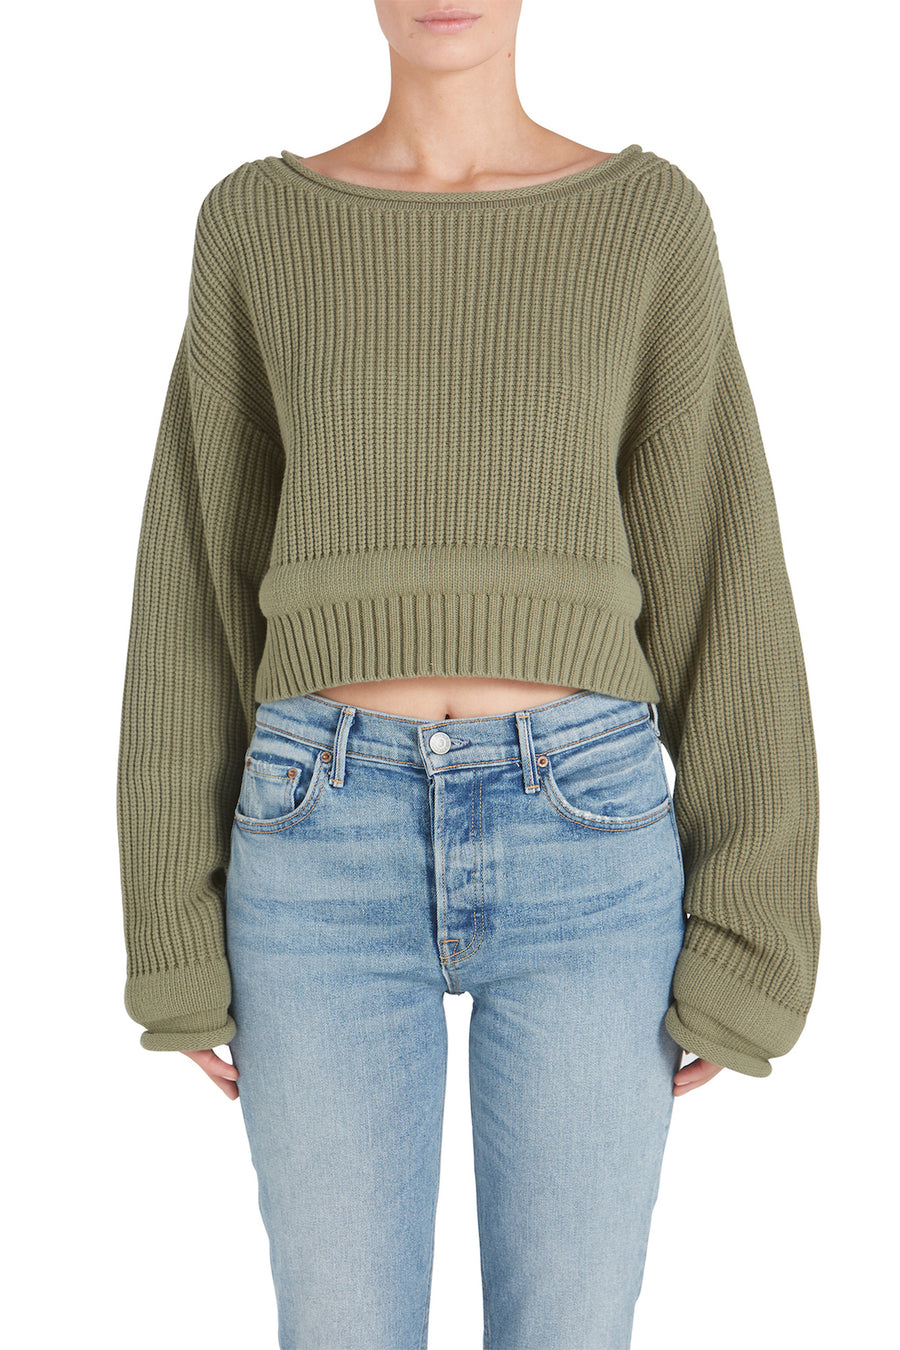 CHUNKY TRIM ACID WASH WIDE NECK PULLOVER